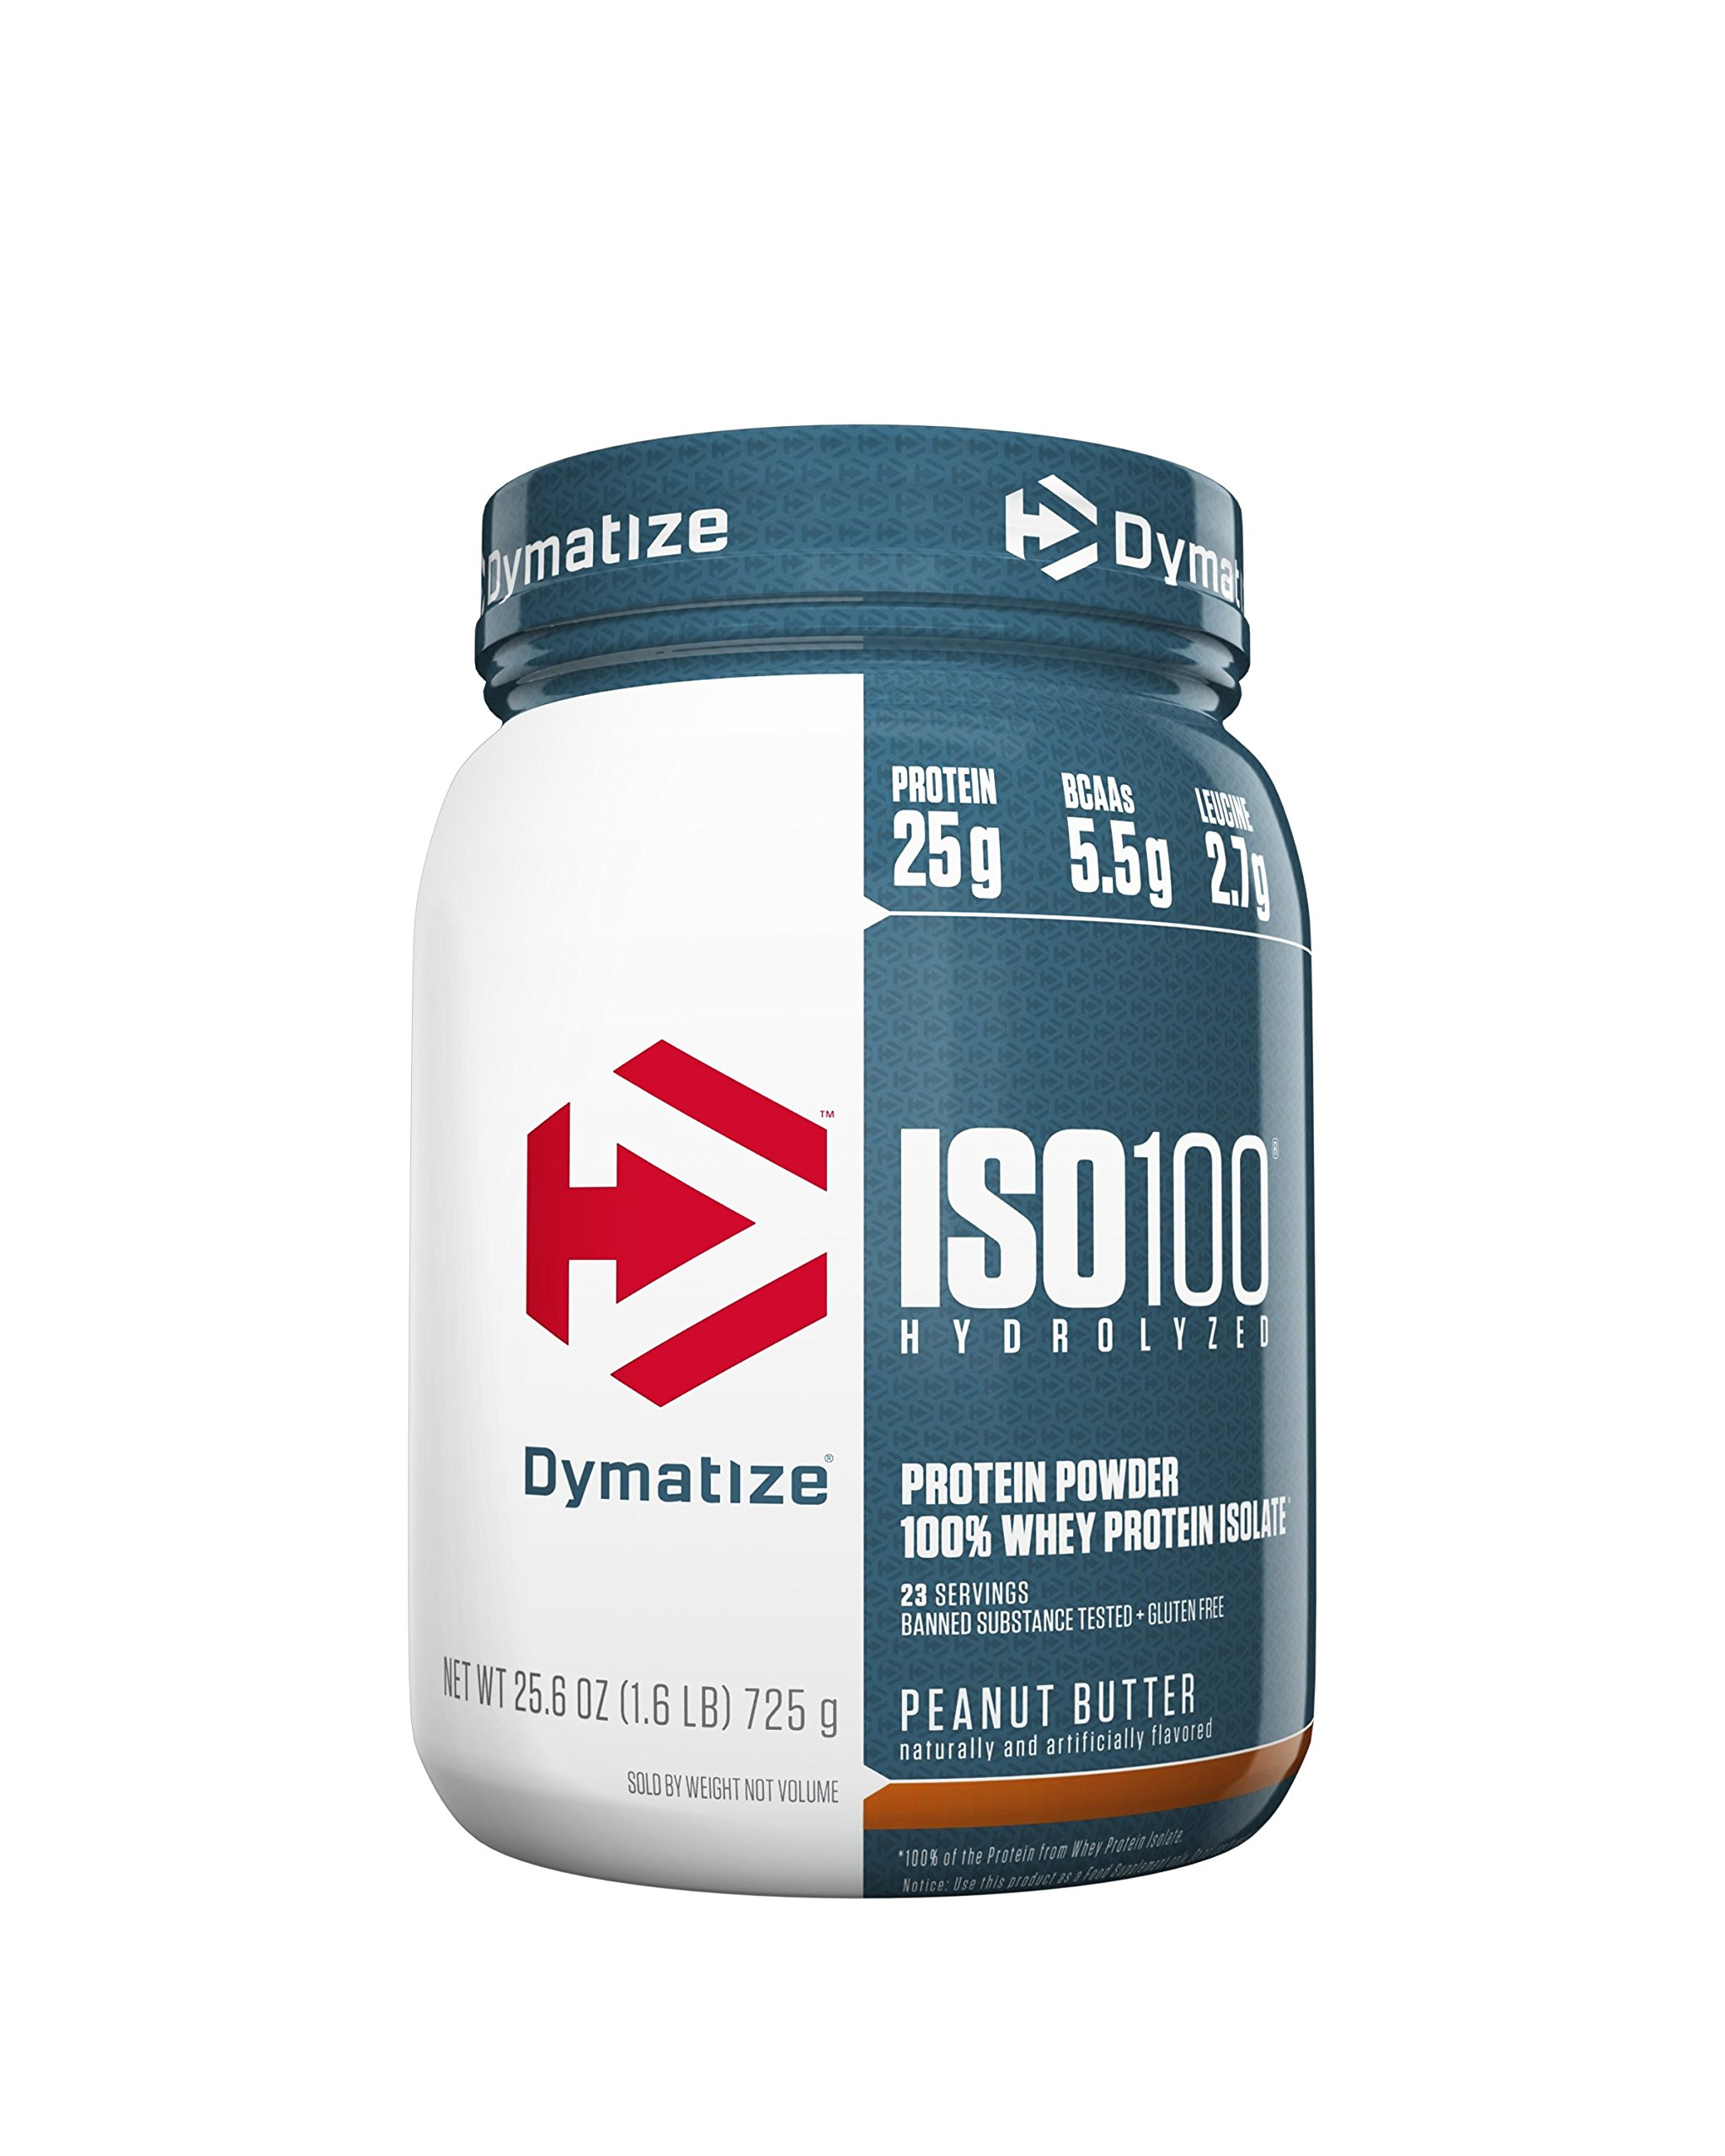 Dymatize ISO 100 Whey Protein Powder Isolate, Peanut Butter, 1.6 lbs